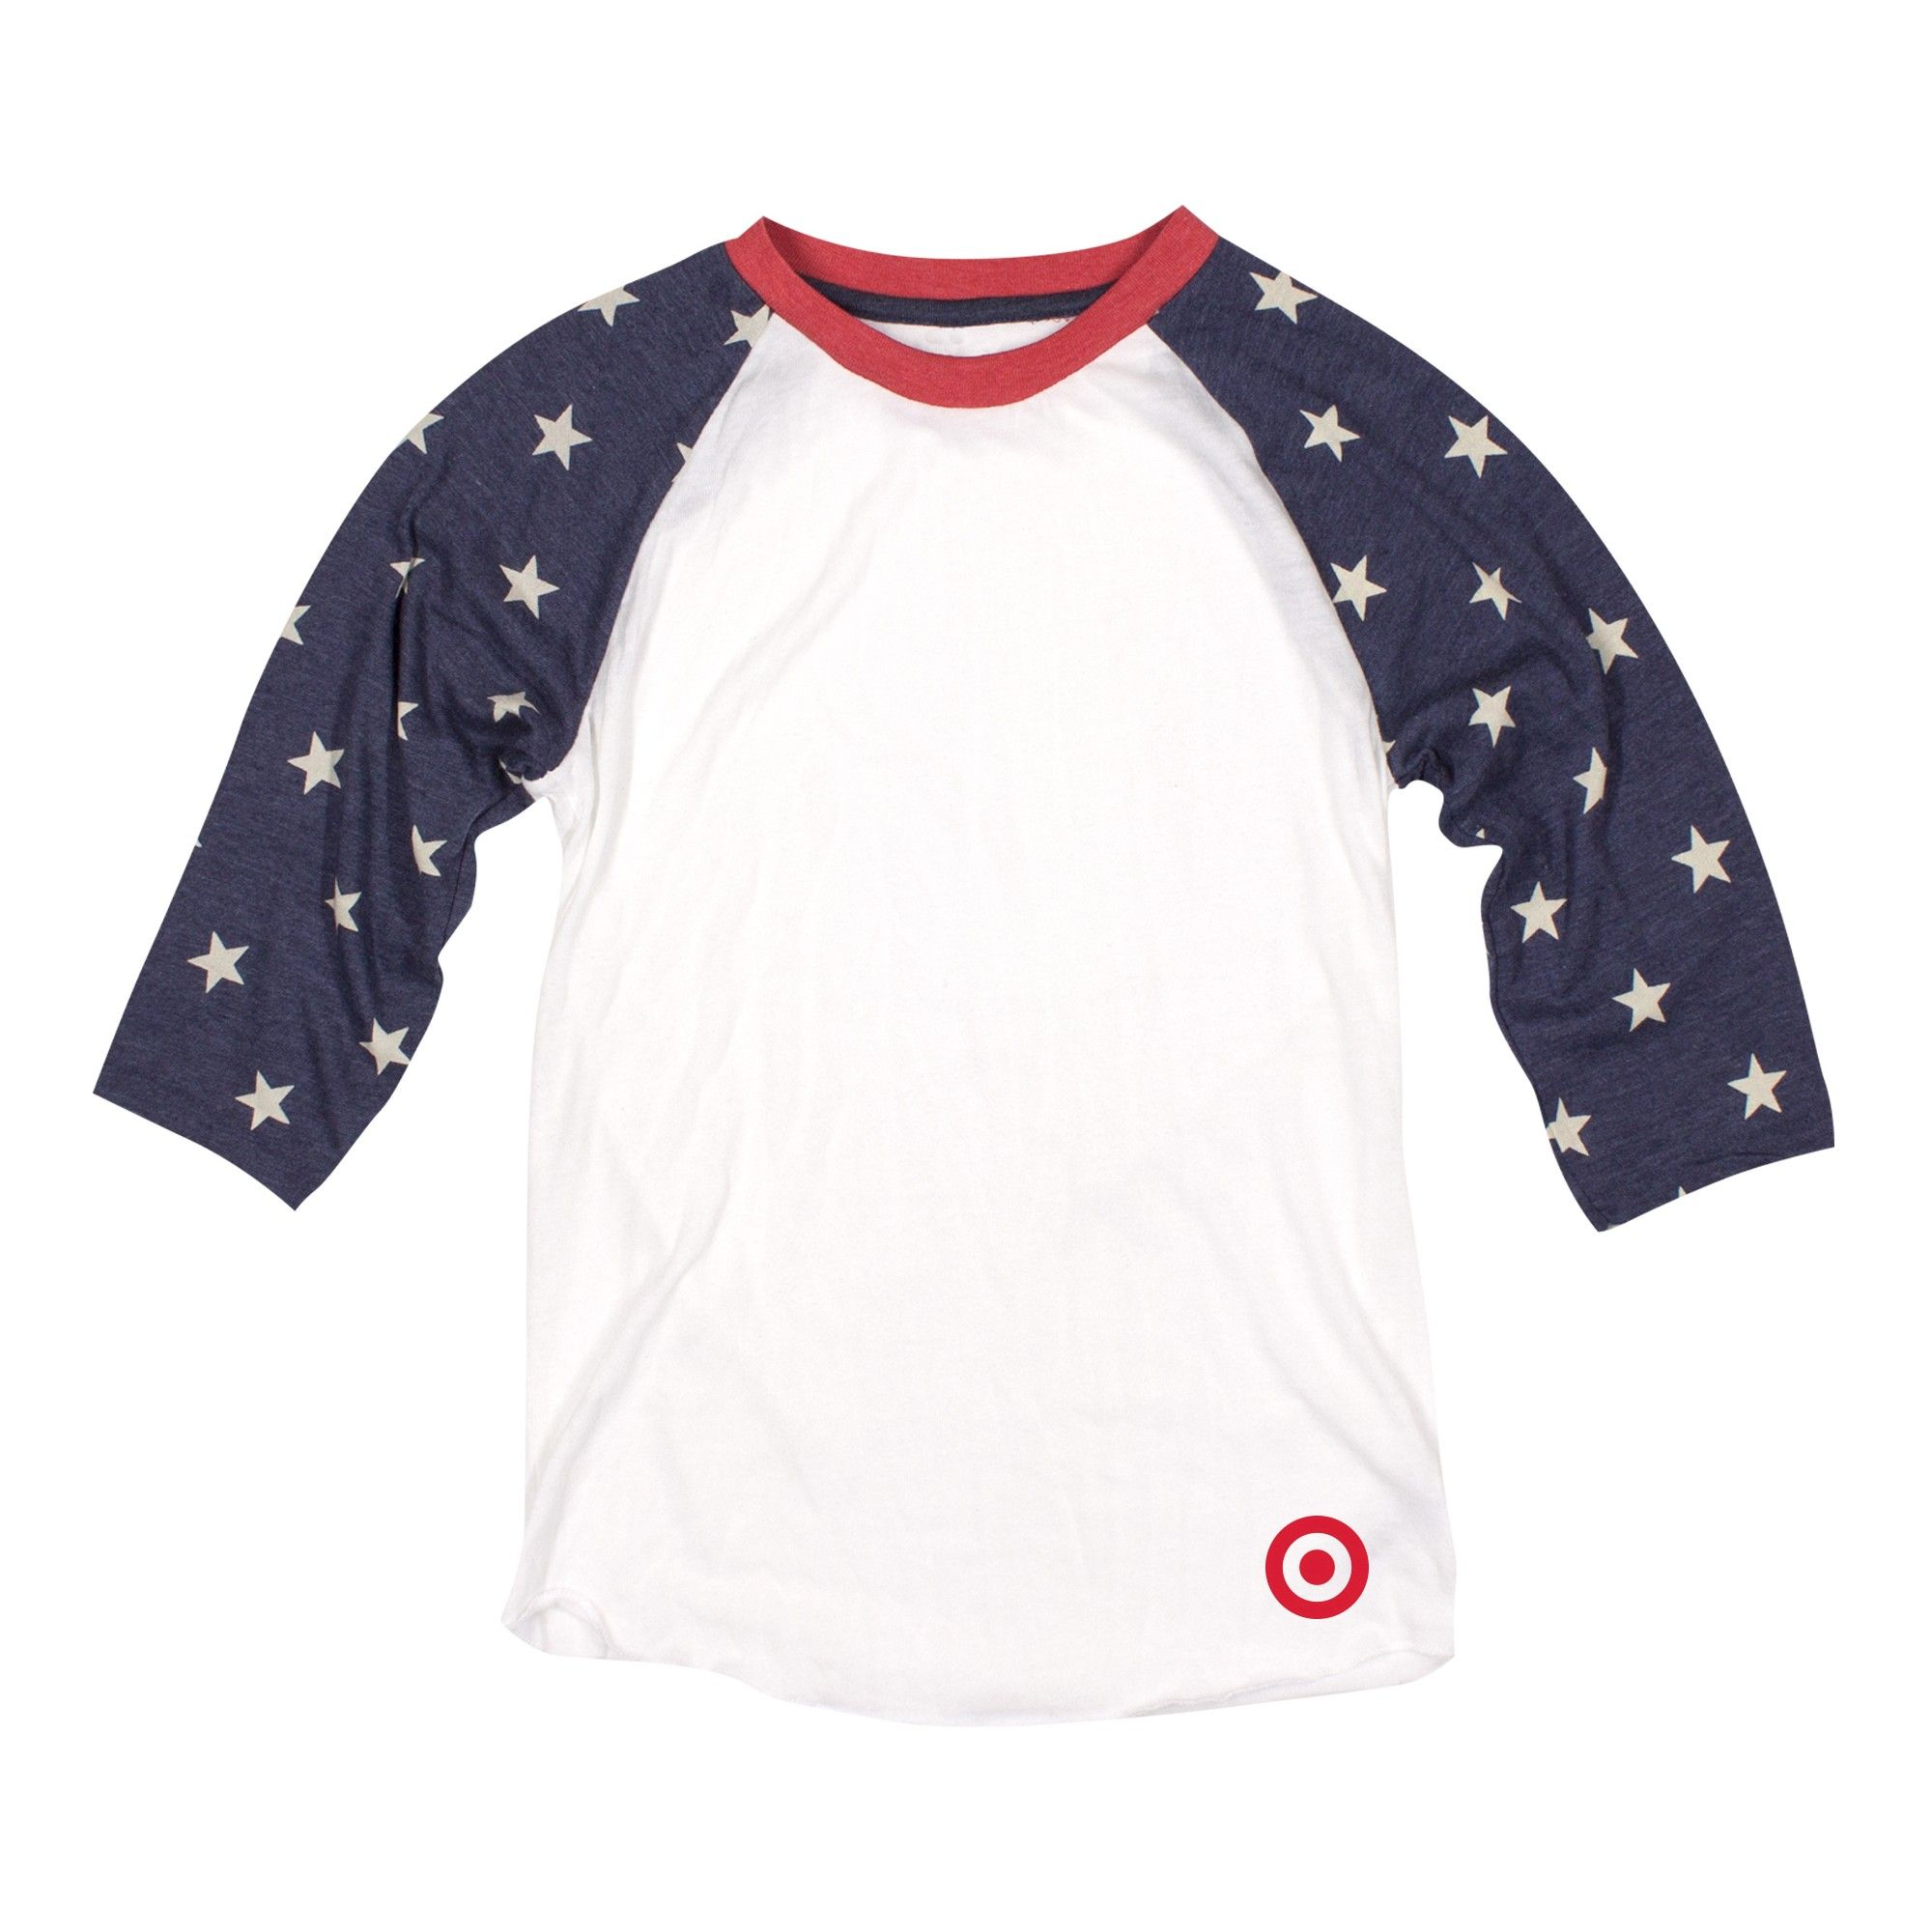 363f85c4 Long Sleeve T Shirts Target - DREAMWORKS